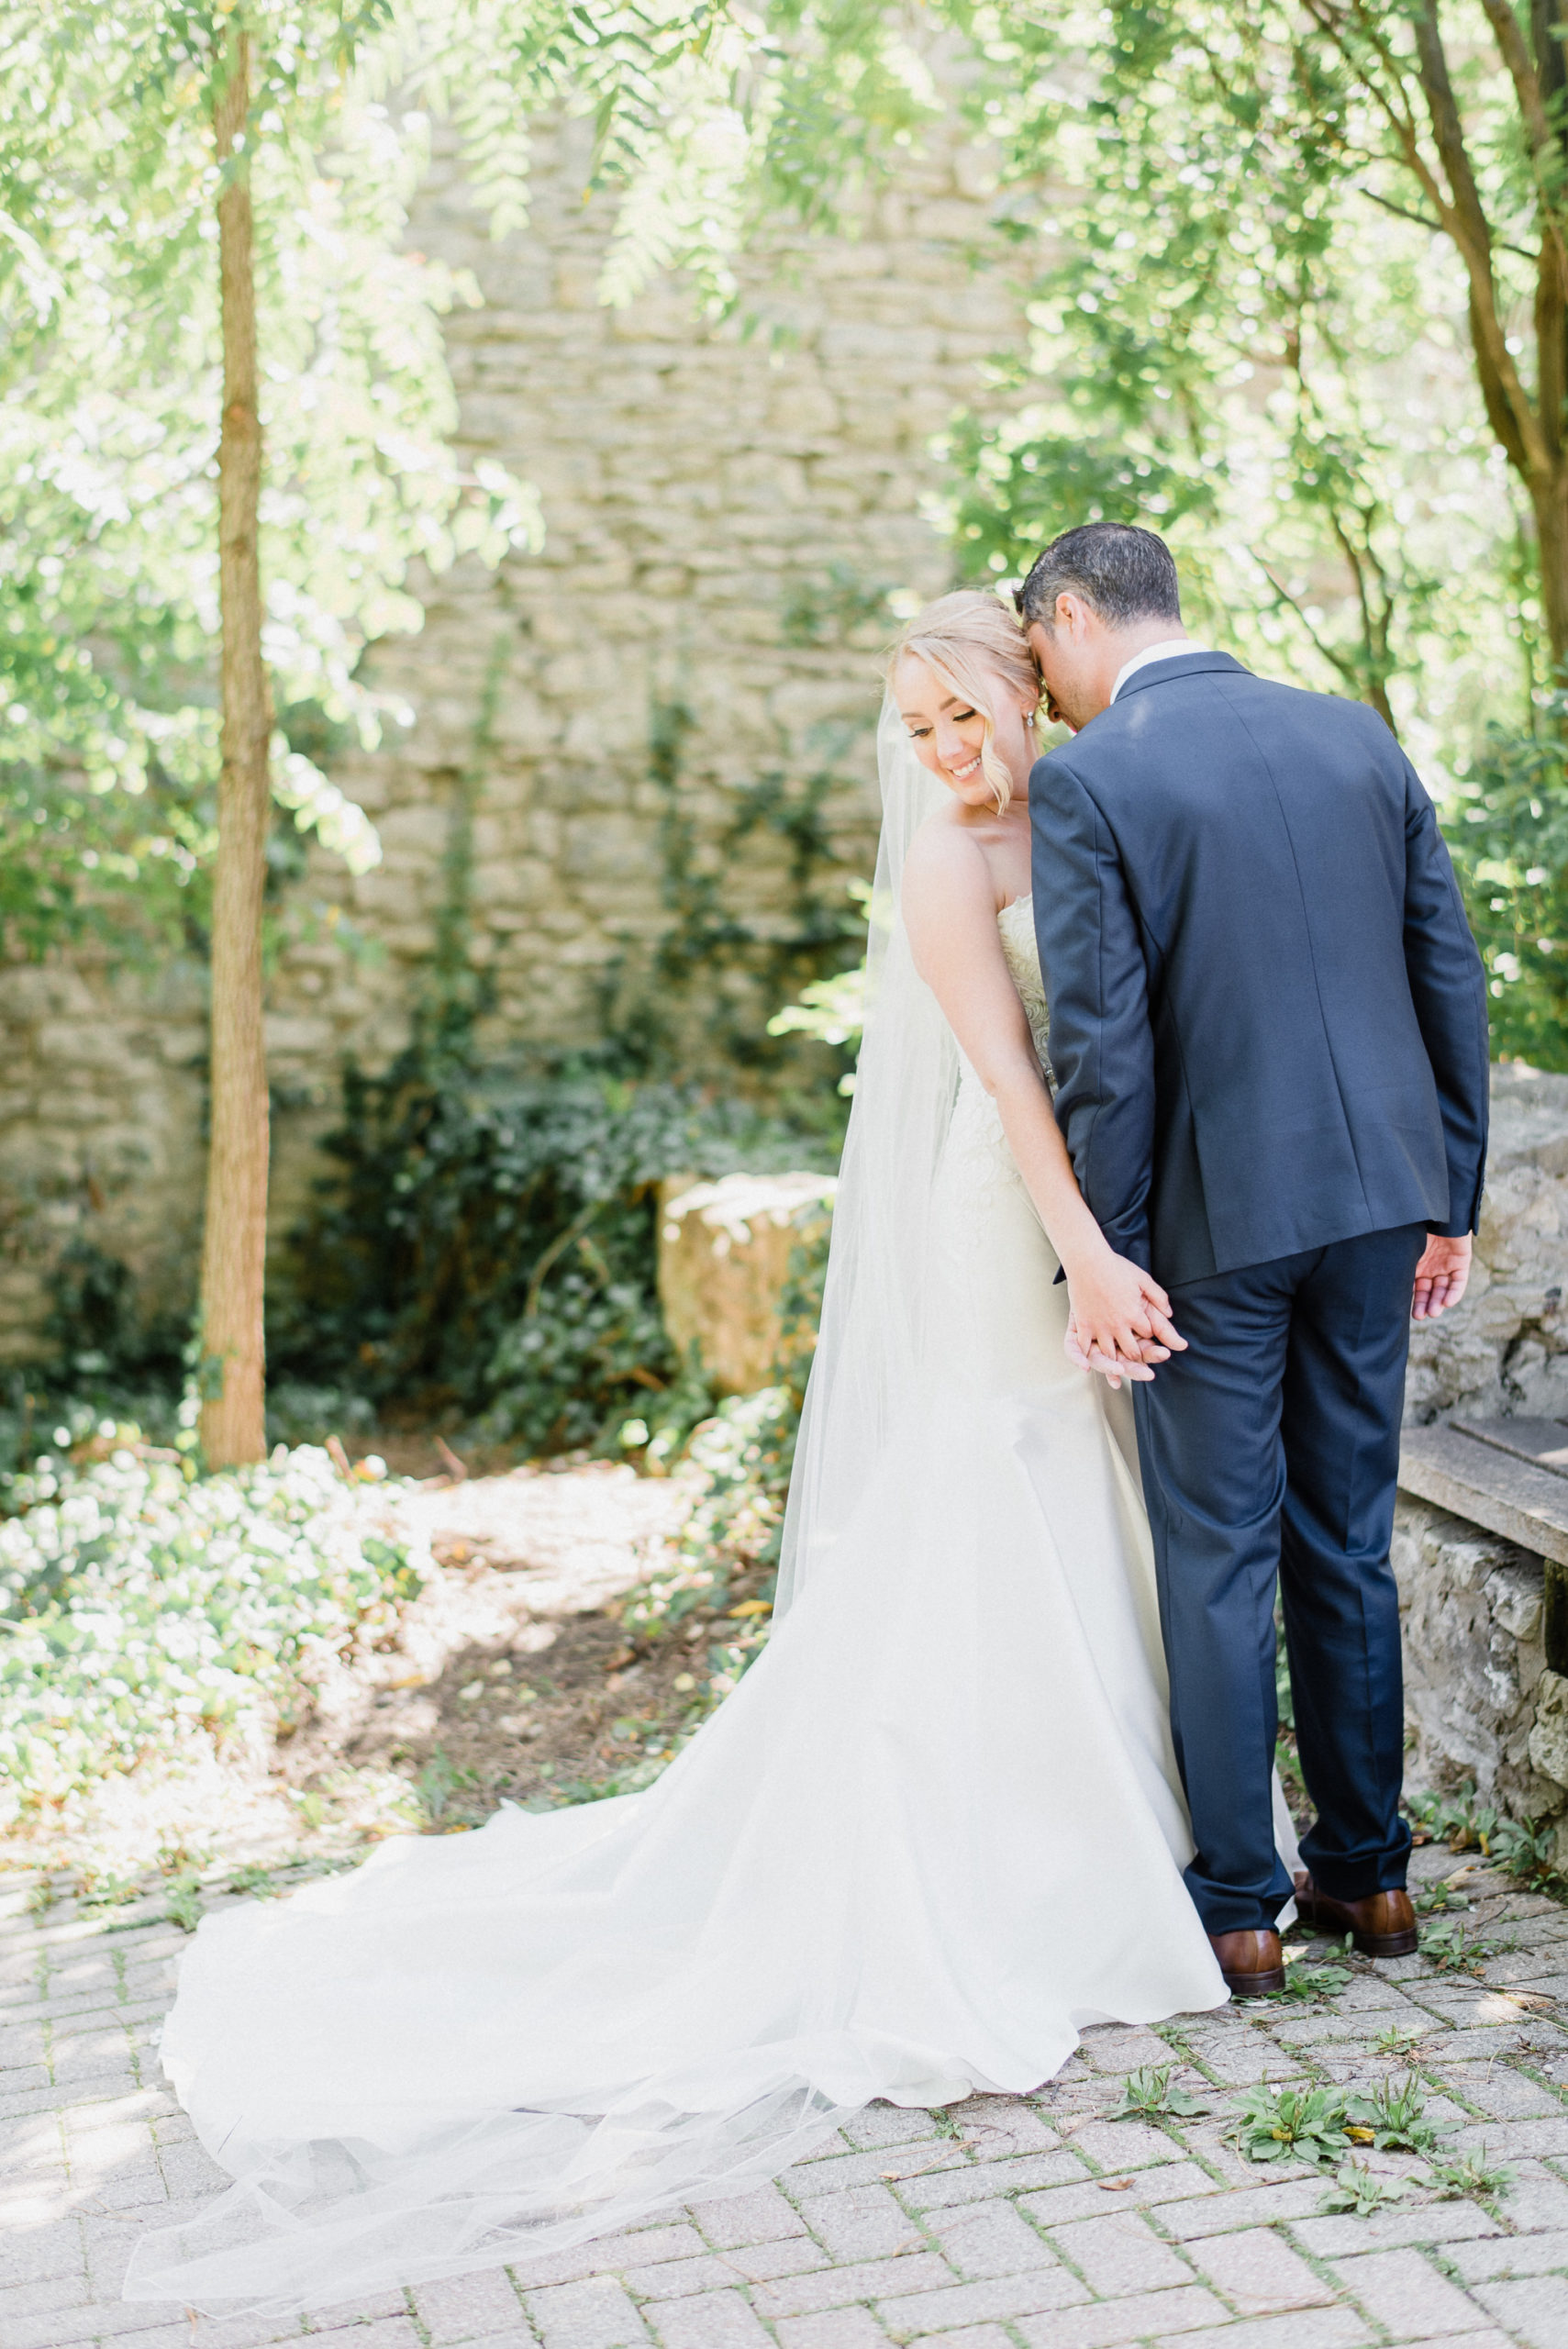 September wedding at the Cambridge Mill by Jenn Kavanagh Photography